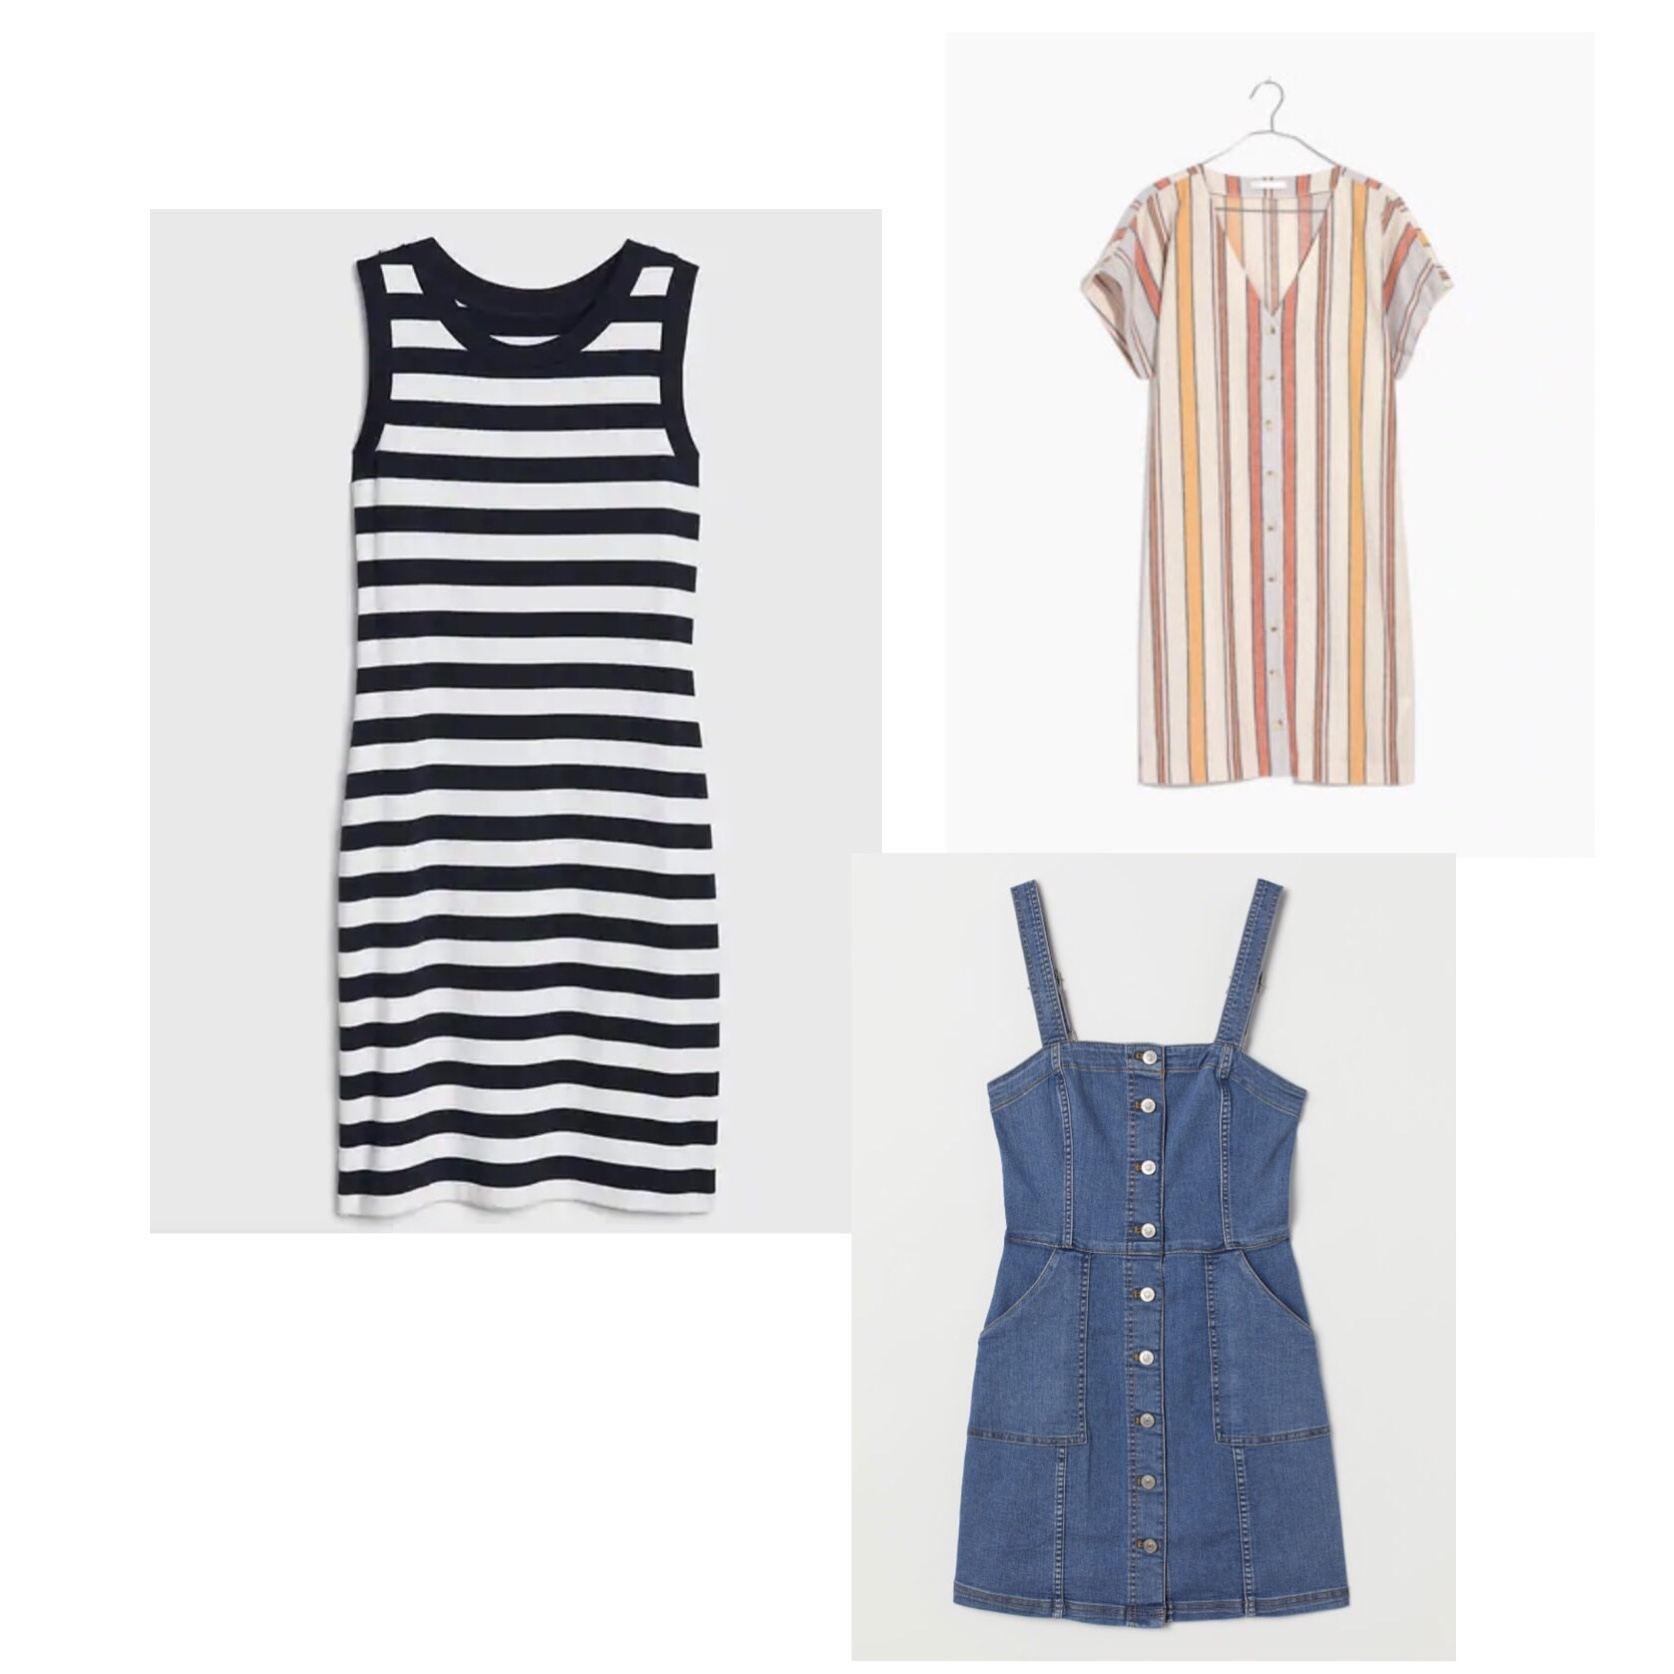 (Clockwise)  1.  Gap Modern Stripe Sleeveless Ringer T-Shirt Dress  - $45  2.  Madewell Button-Front Easy Dress  - $118  3. H &M Bib Overall Dress  - $35